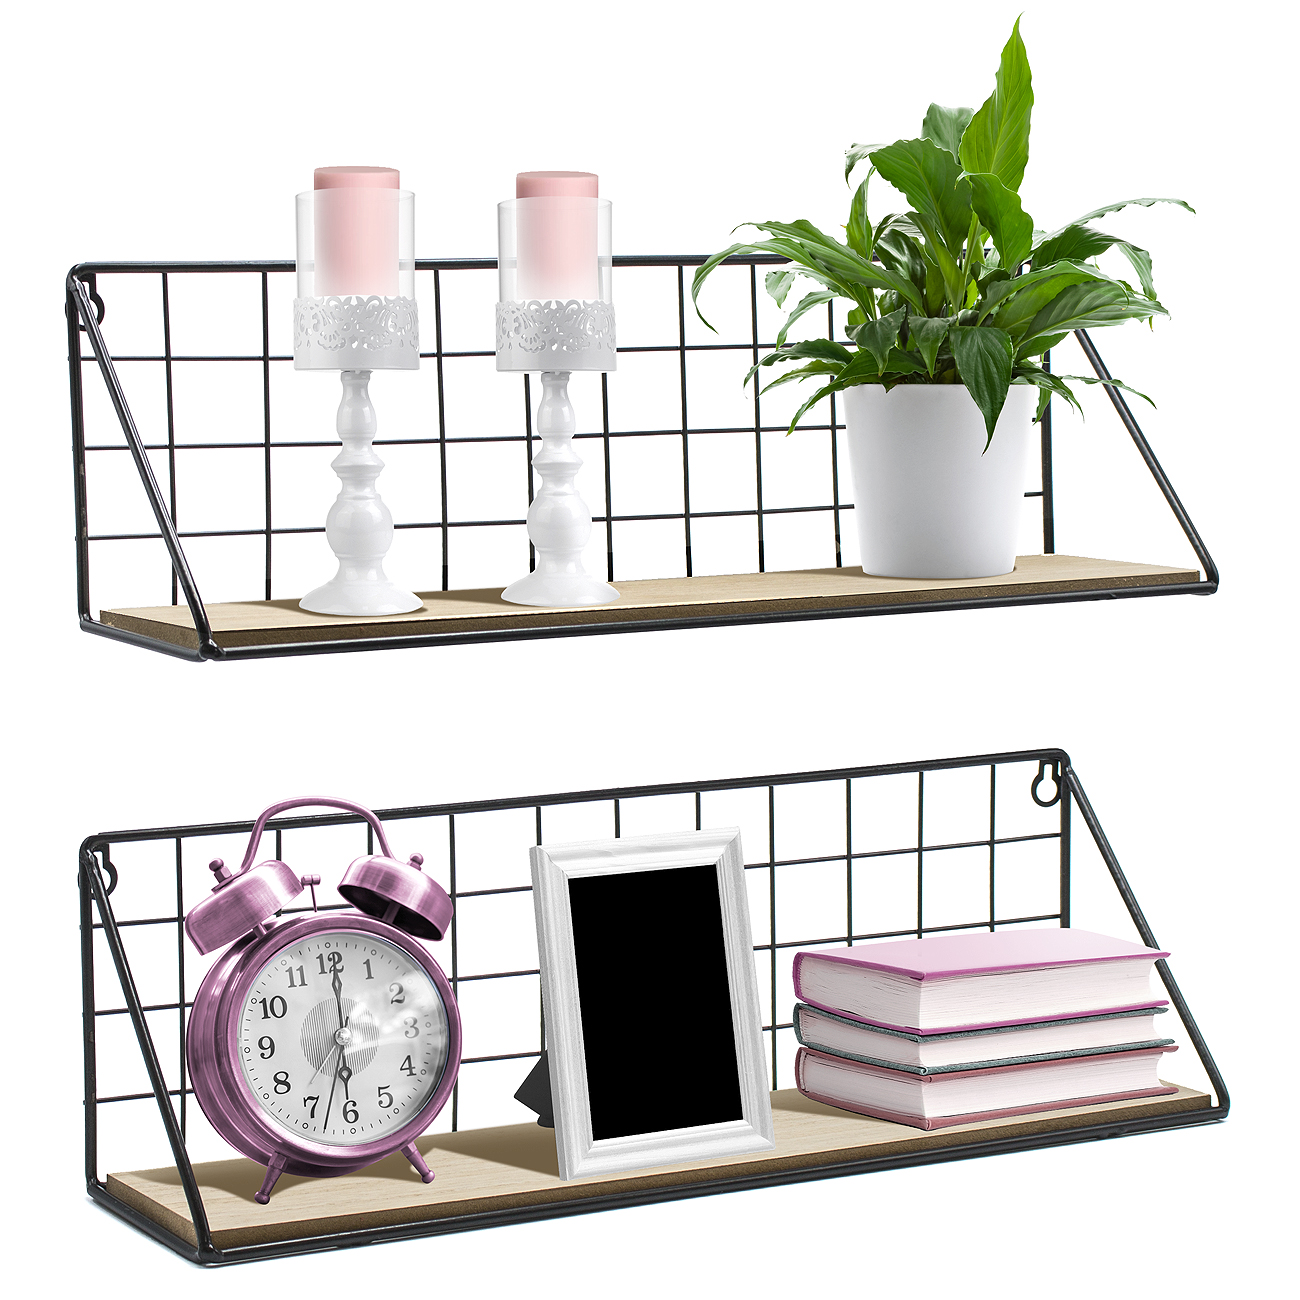 sorbus floating shelves wall mounted rustic wood storage set for and ture frames collectibles decorative items great living room office bedroom diy shelf projects pink corner home